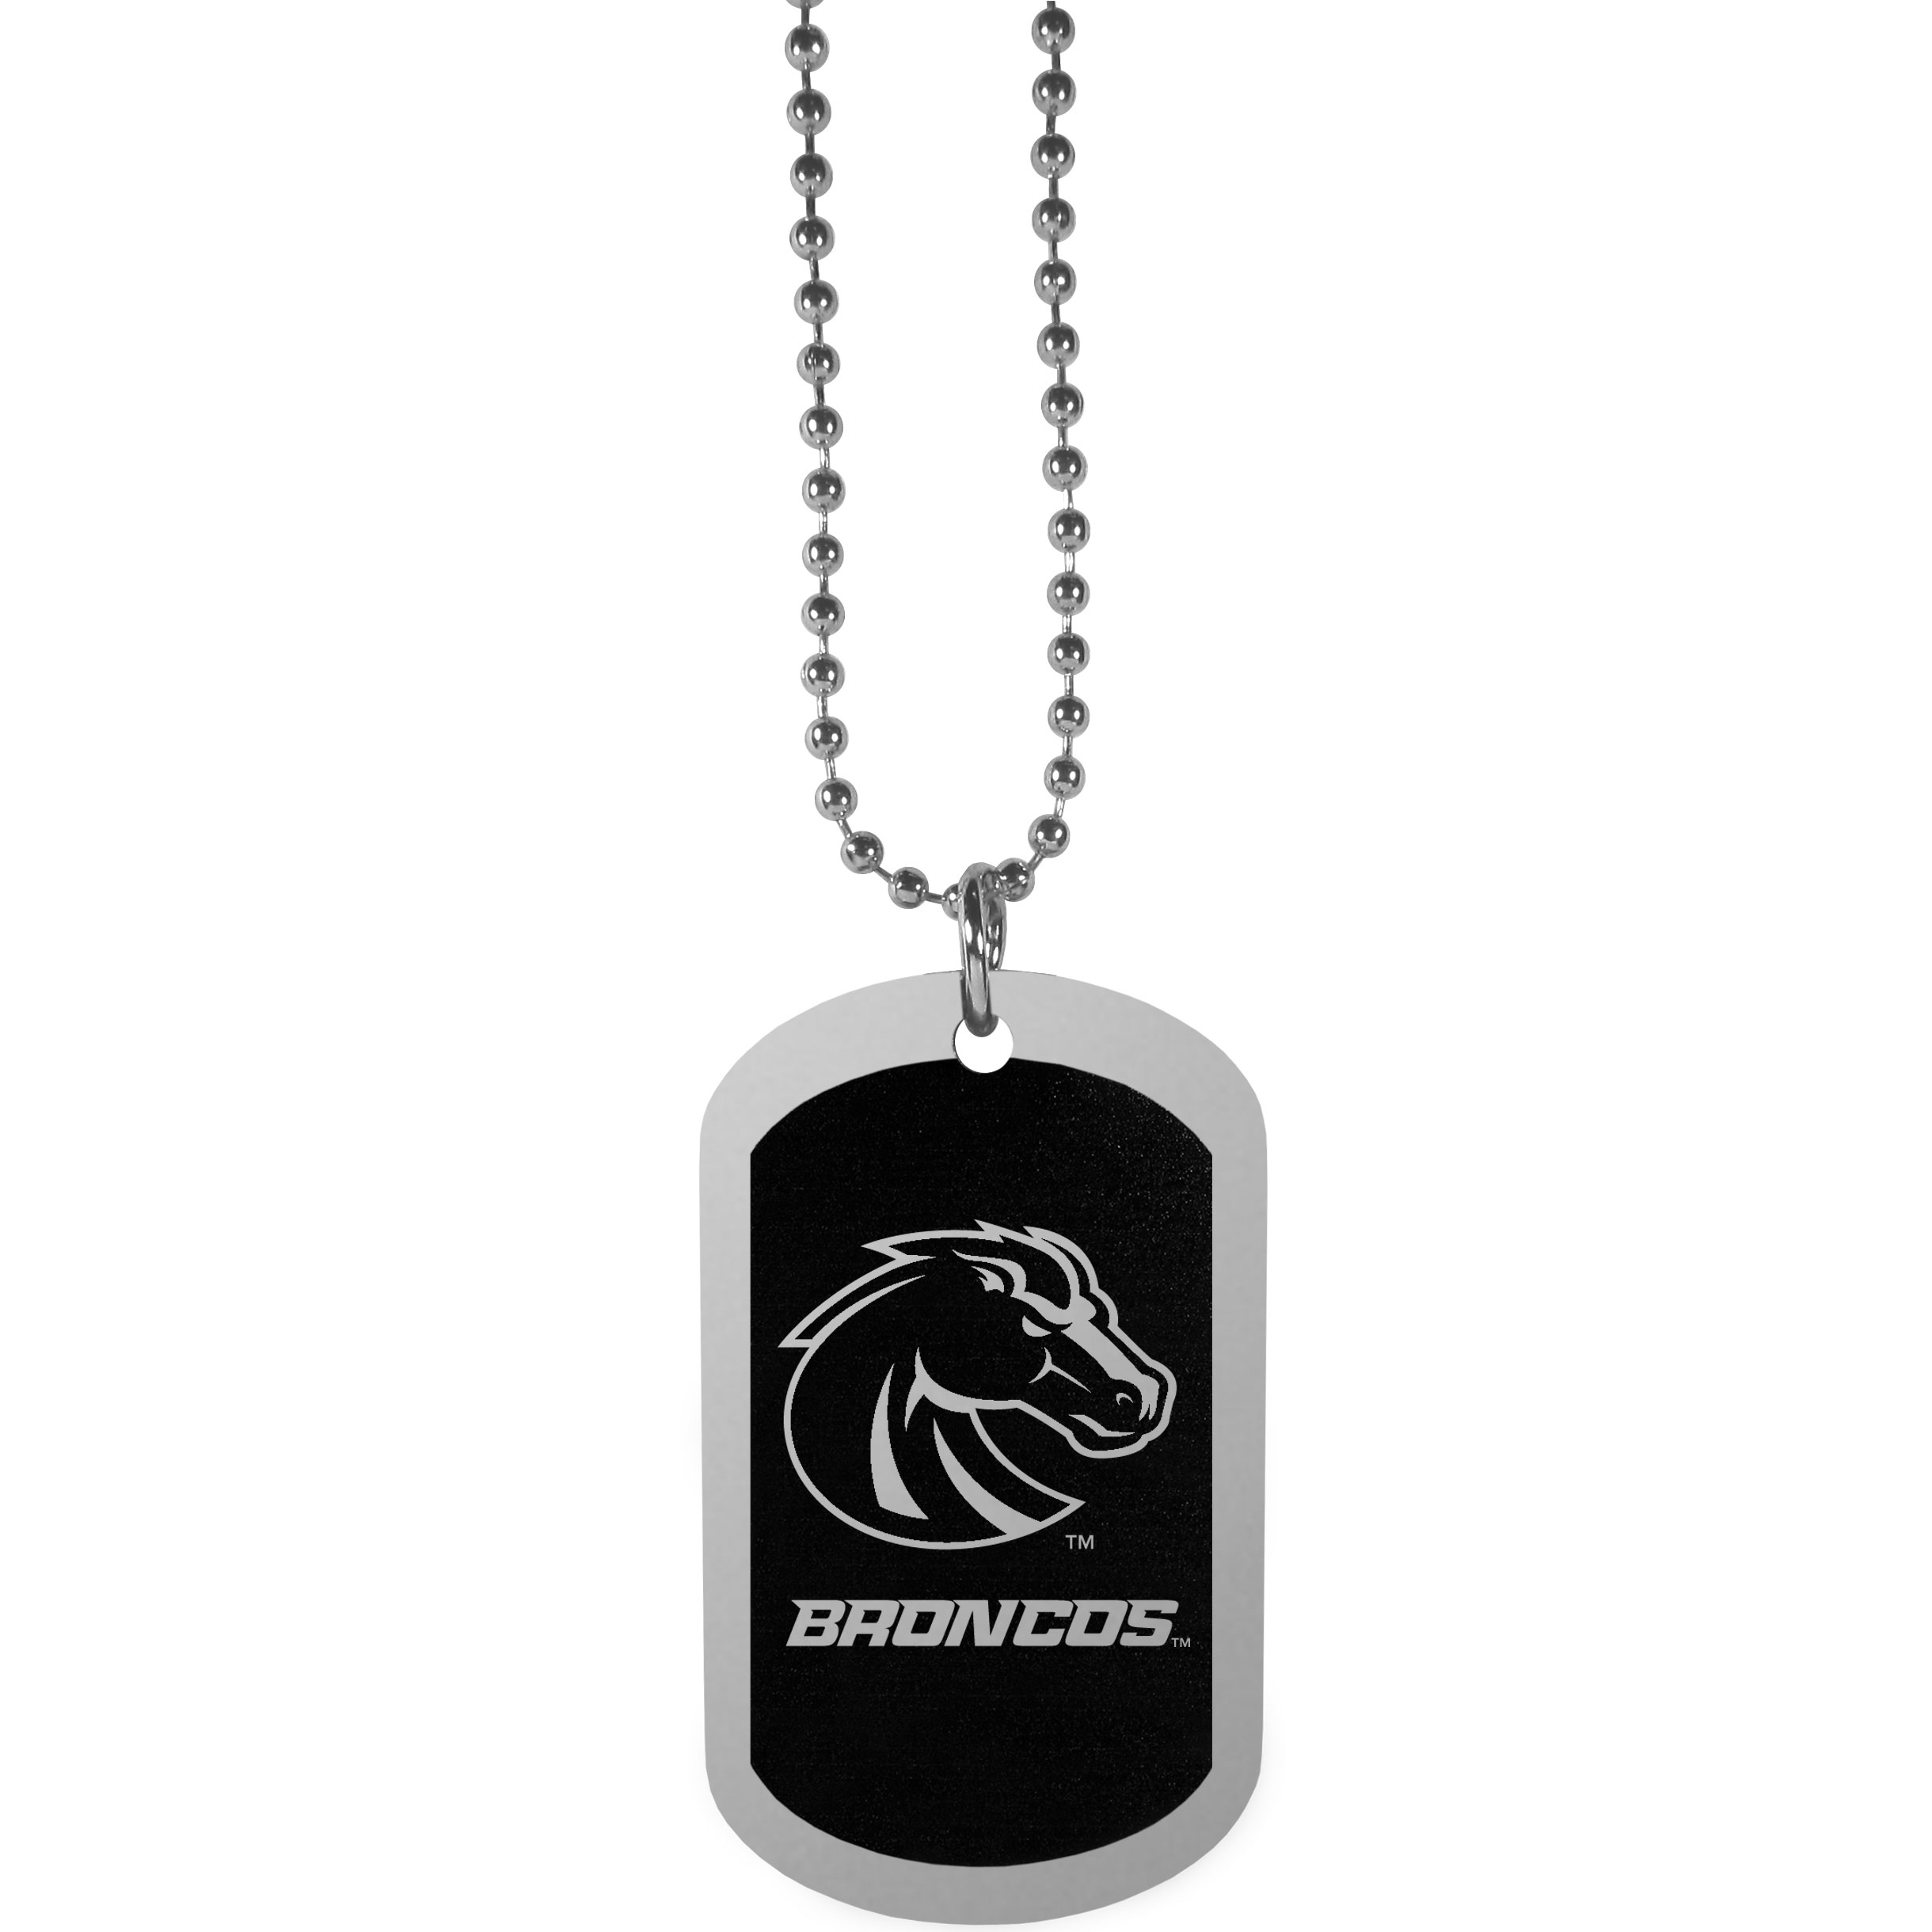 Boise St. Broncos Chrome Tag Necklace - Dog tag necklaces are a fashion statement that is here to stay. The sporty version of the classic tag features a black printed over a high polish tag to create a bold and sporty look. The tag comes on a 26 inch ball chain with a ball and joint clasp. Any Boise St. Broncos would be proud to wear this attractive fashion accessory.